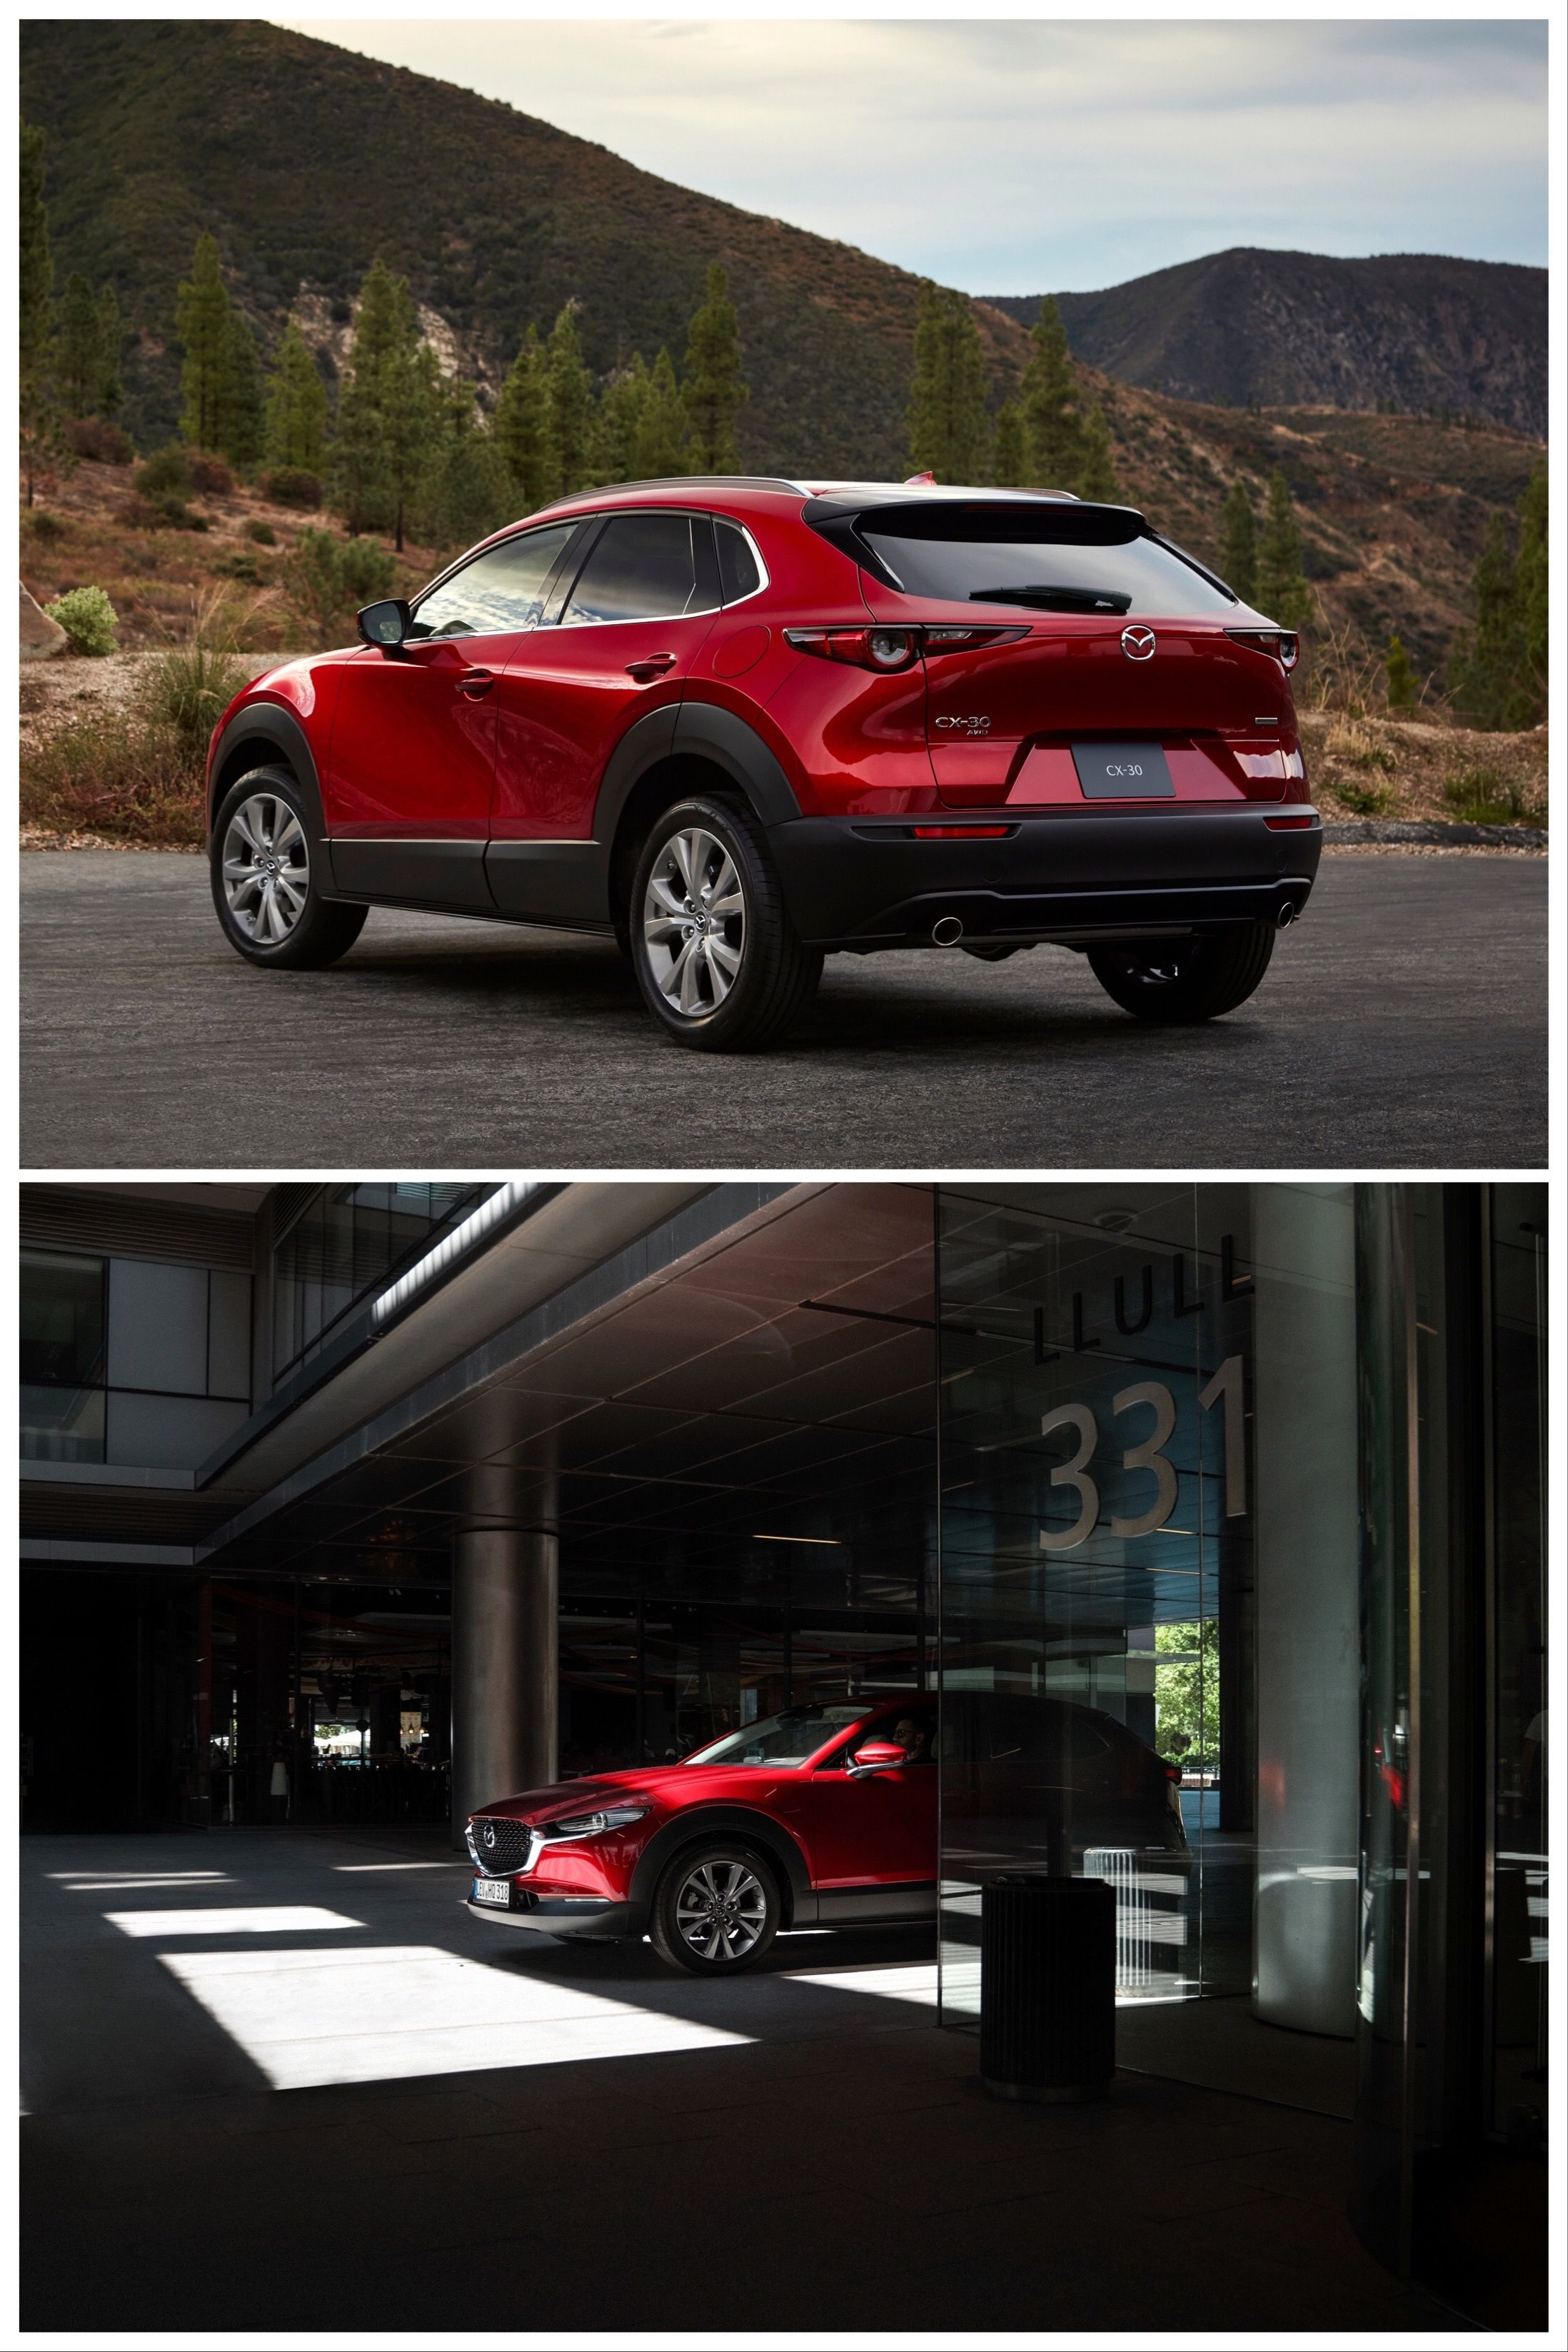 2020 Mazda Cx 30 Stylishly Bisects Cx 3 Cx 5 With Images Mazda Compact Crossover Crossover Suv